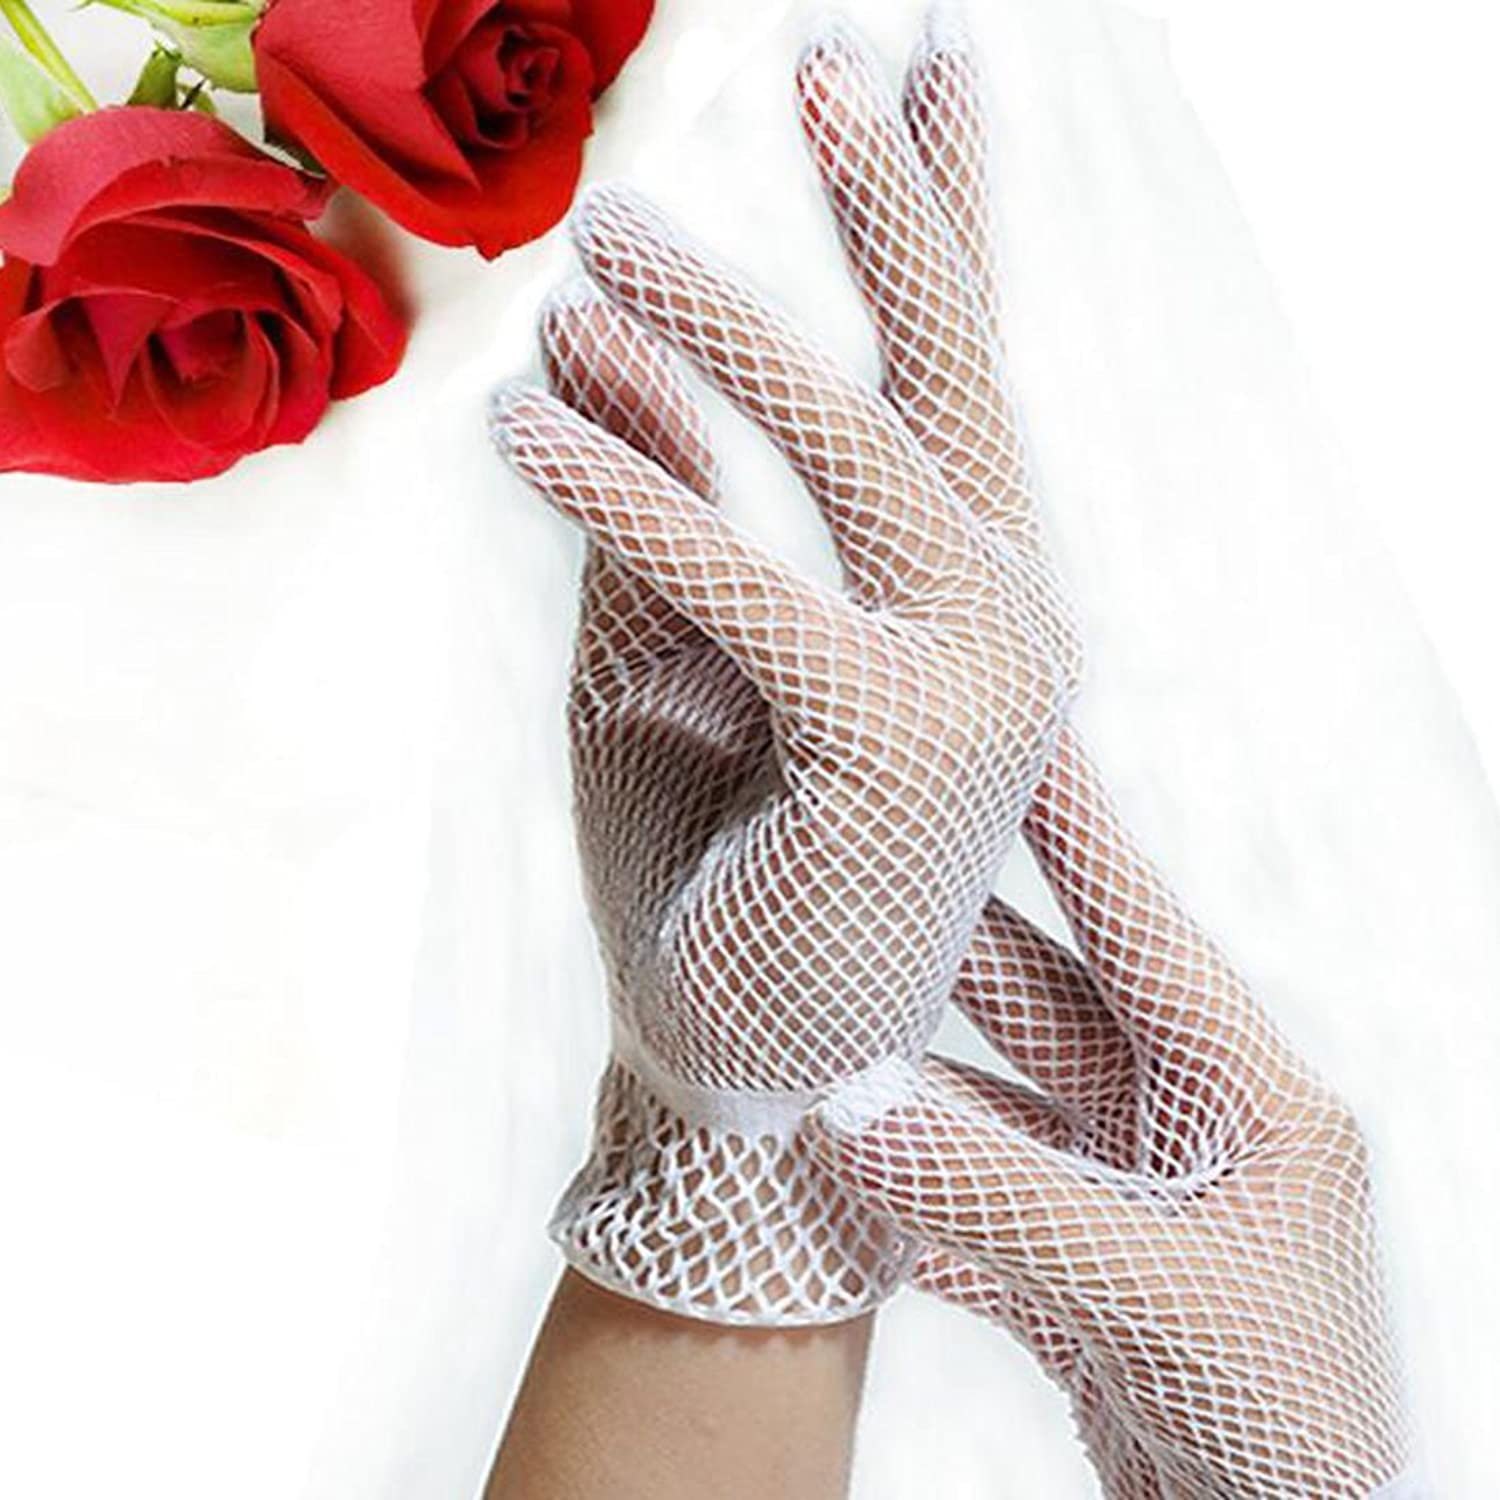 1920s Accessories | Great Gatsby Accessories Guide Fishnet Mesh Gloves Fashion Women Gloves Summer UV Protection Lace Glove White $2.11 AT vintagedancer.com